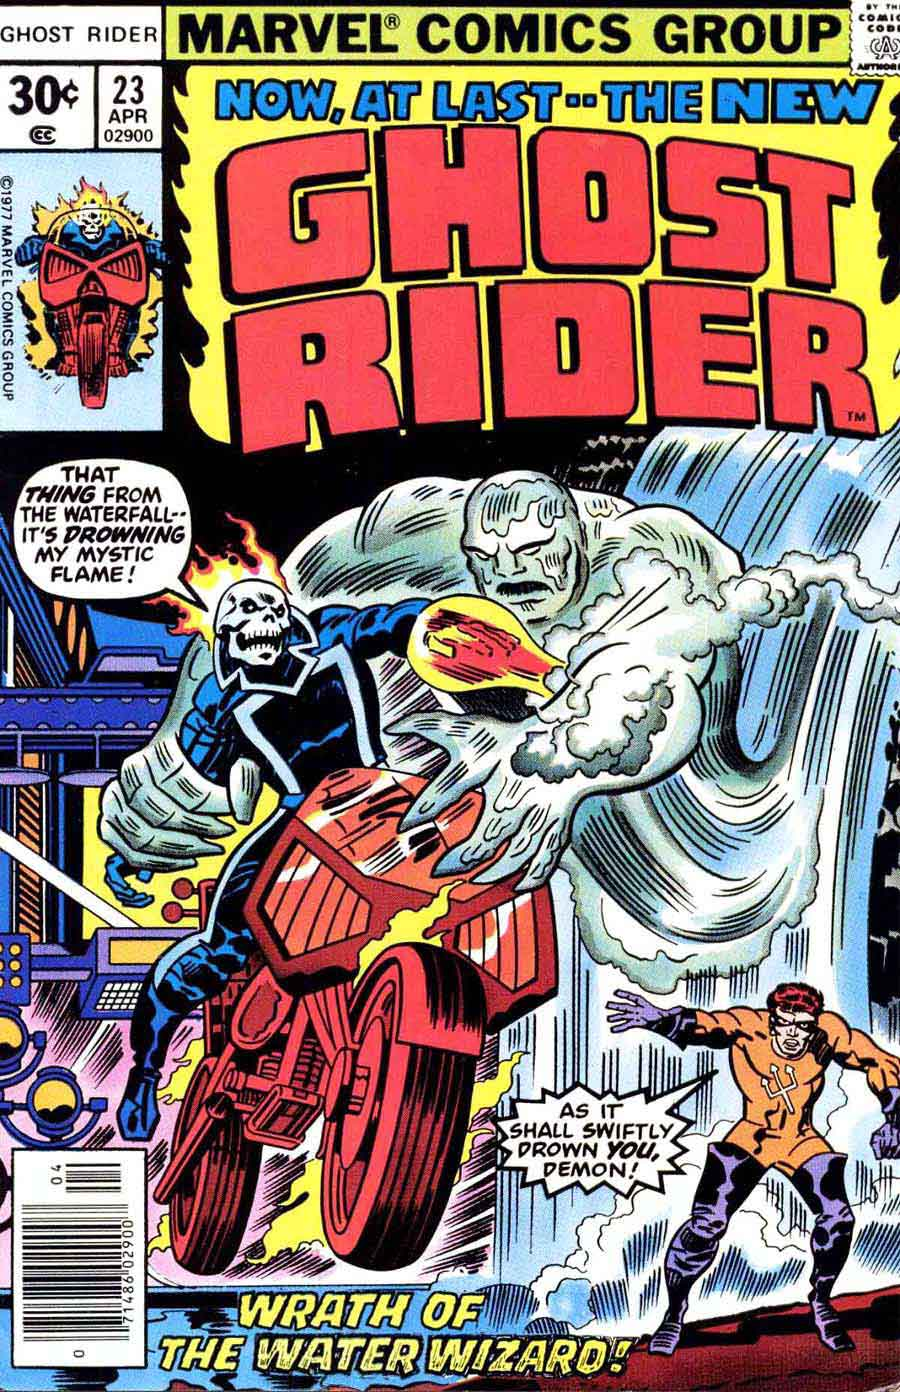 Comic Book Cover Artist Jobs : Ghost rider v don newton art jack kirby cover